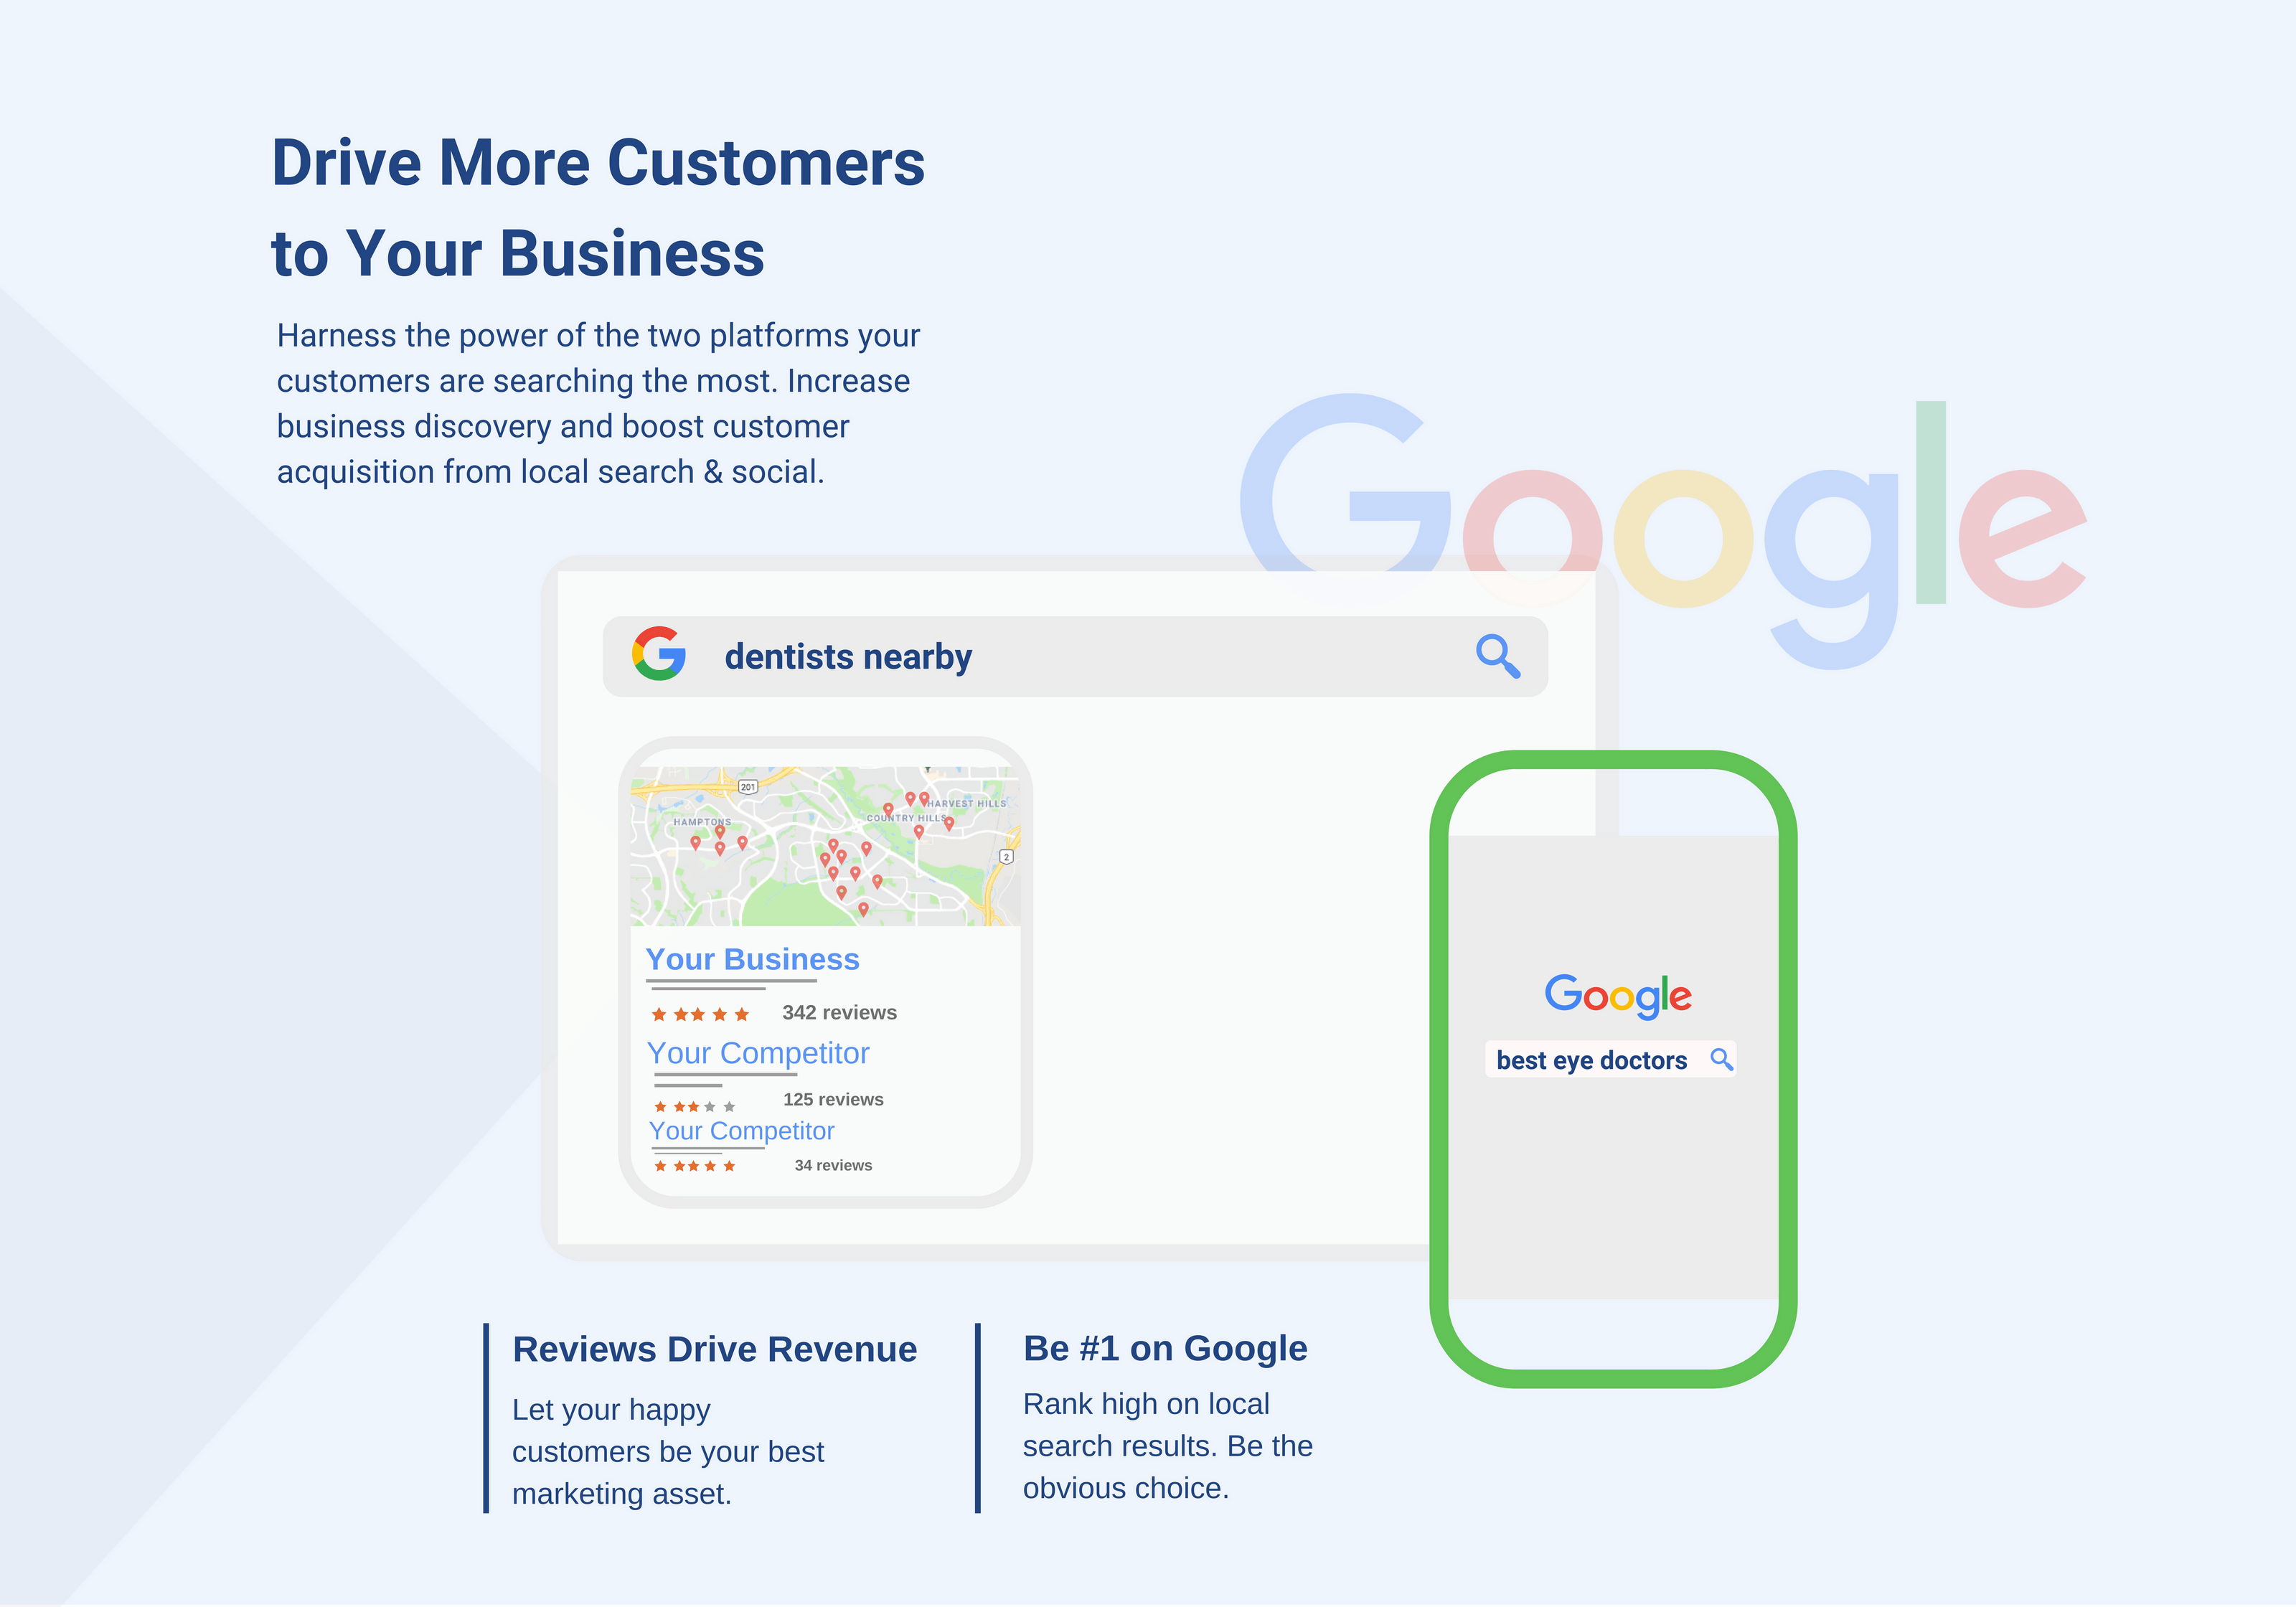 Google reviews help you rank higher on search engines